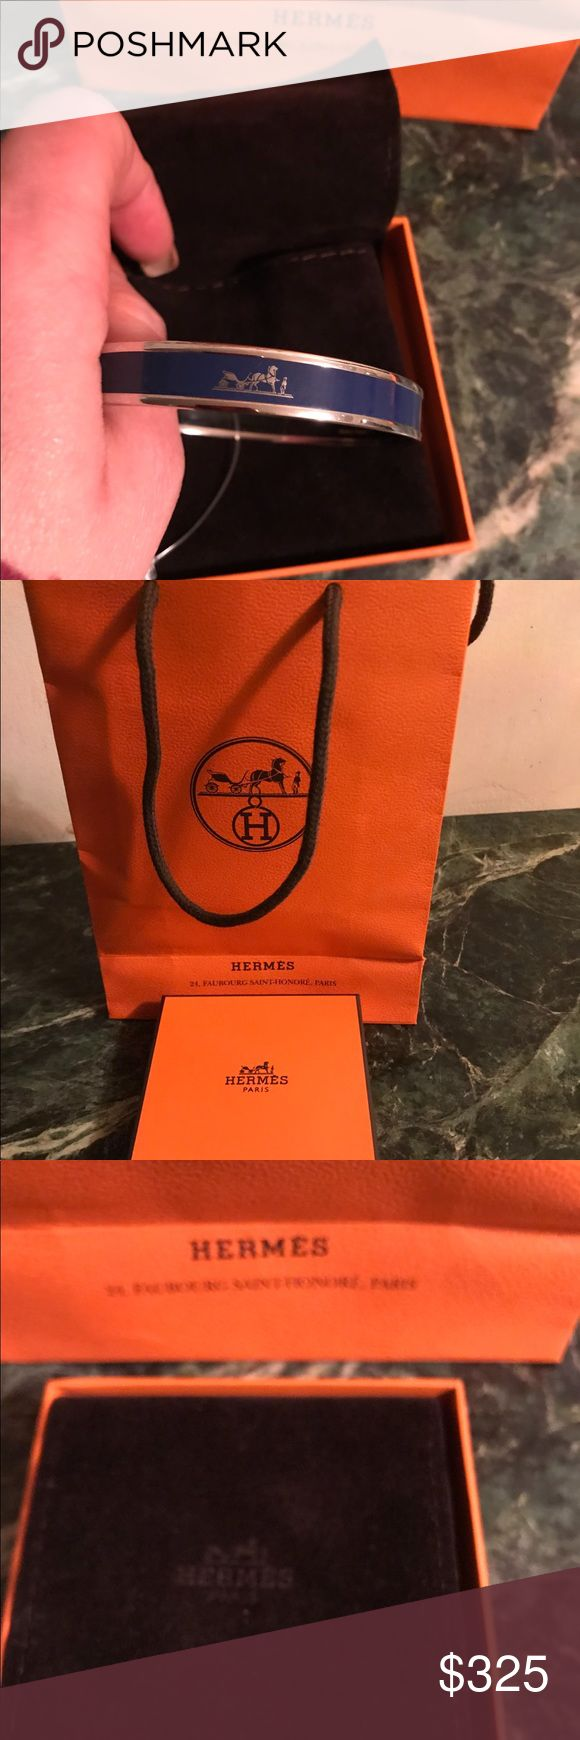 100%Authentic Hermès bangle Cobalt blue and silver New with tags size 70 Hermes Jewelry Bracelets